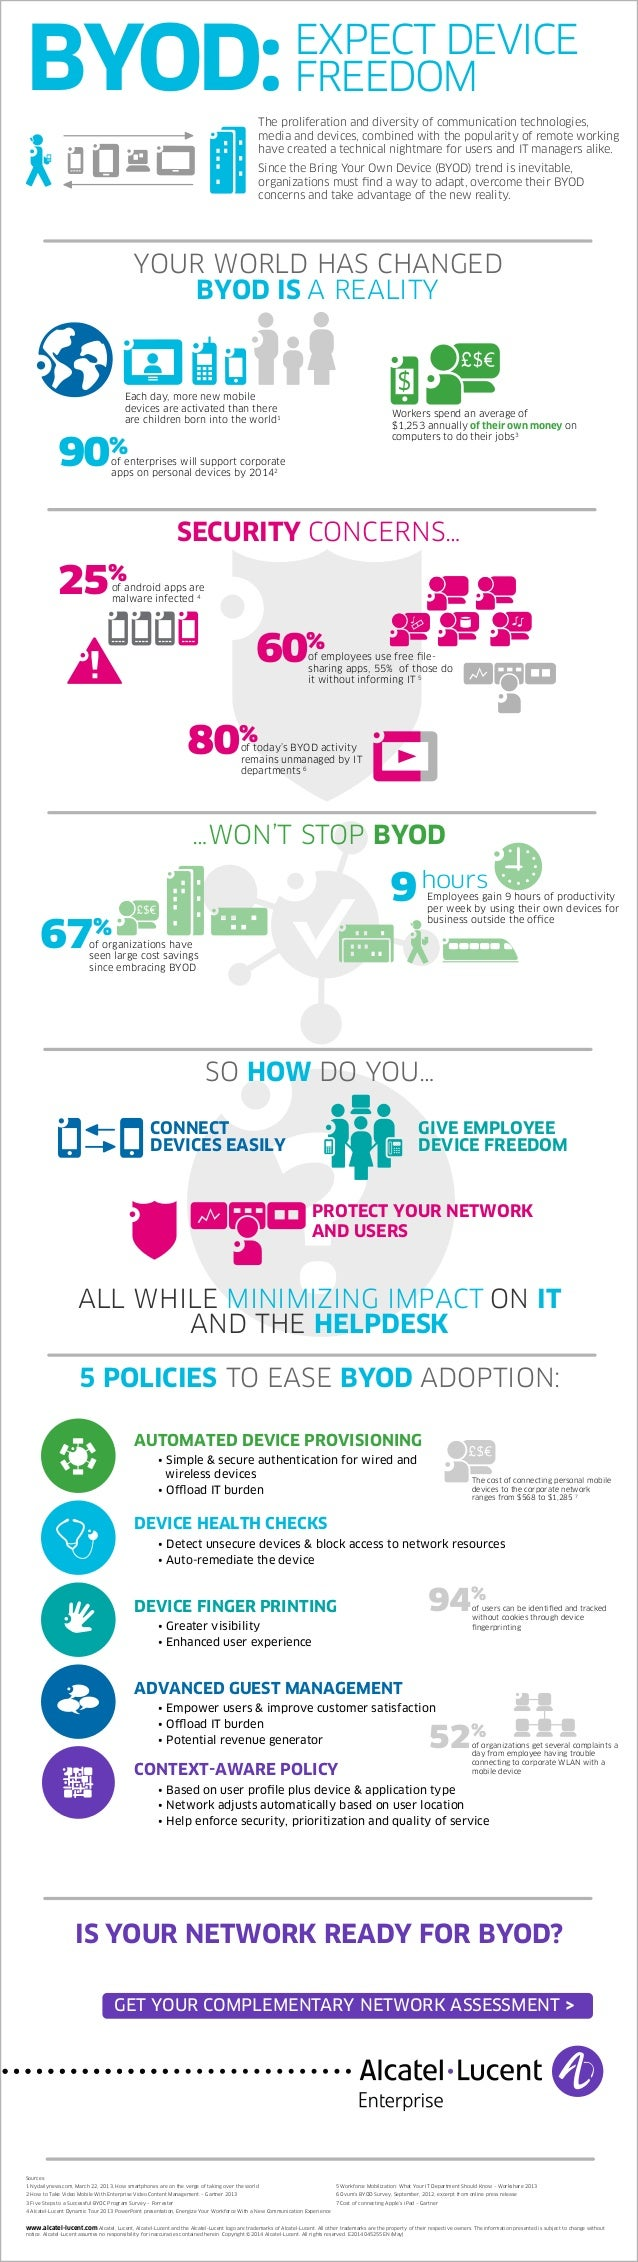 GET YOUR COMPLEMENTARY NETWORK ASSESSMENT > IS YOUR NETWORK READY FOR BYOD? www.alcatel-lucent.com Alcatel, Lucent, Alcate...